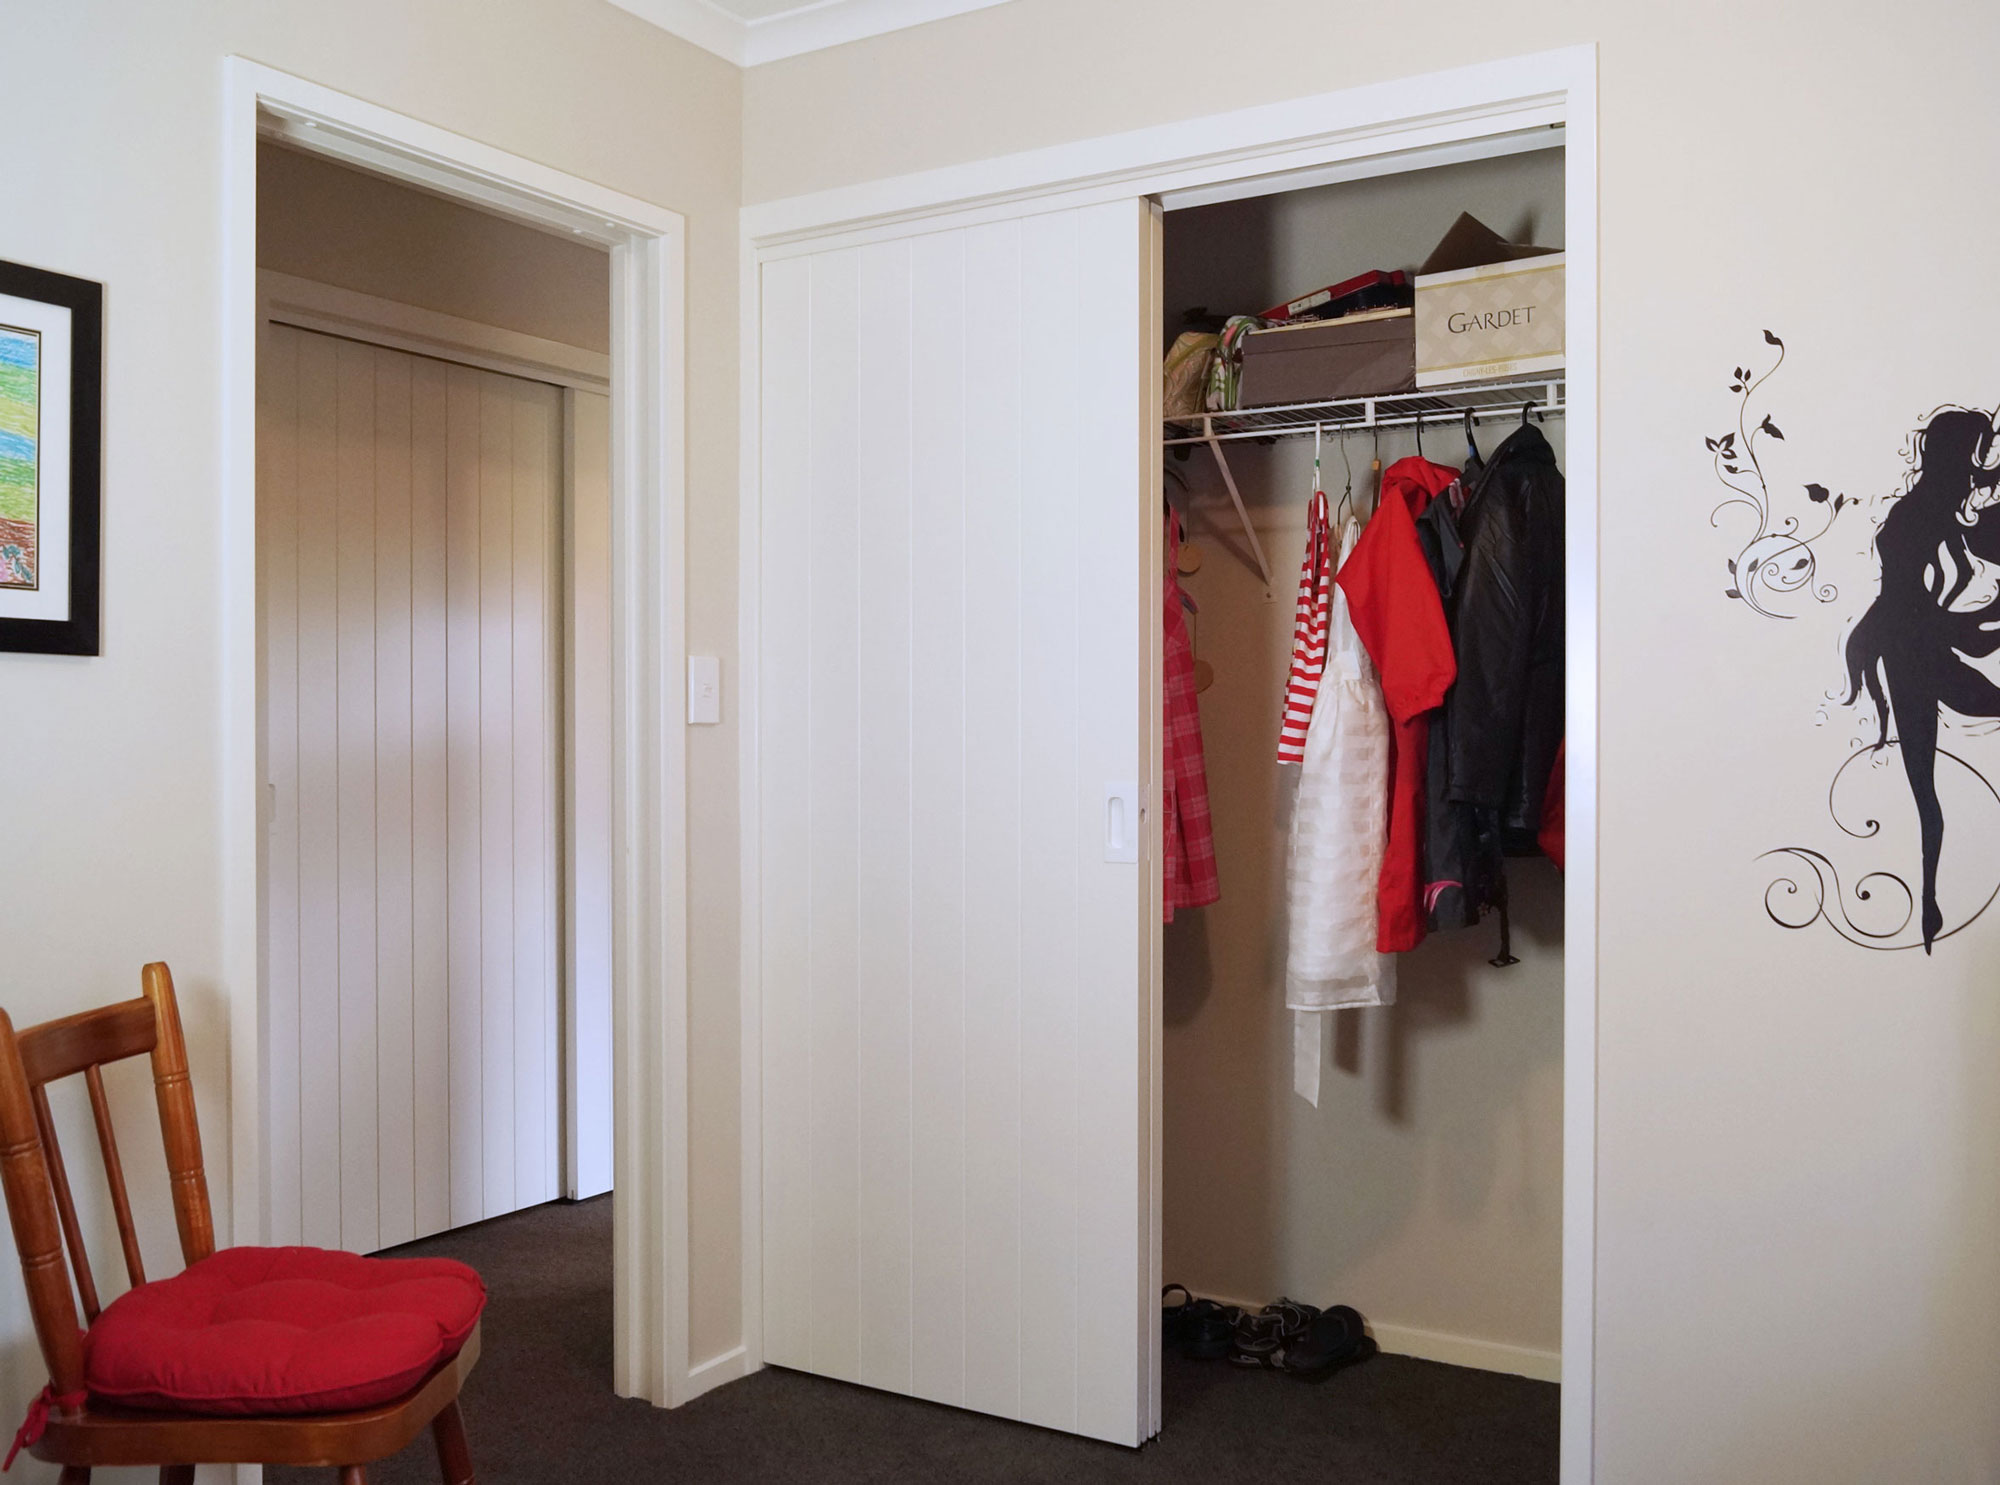 Topfix wardrobe with V-Groove doors and CL200 handles